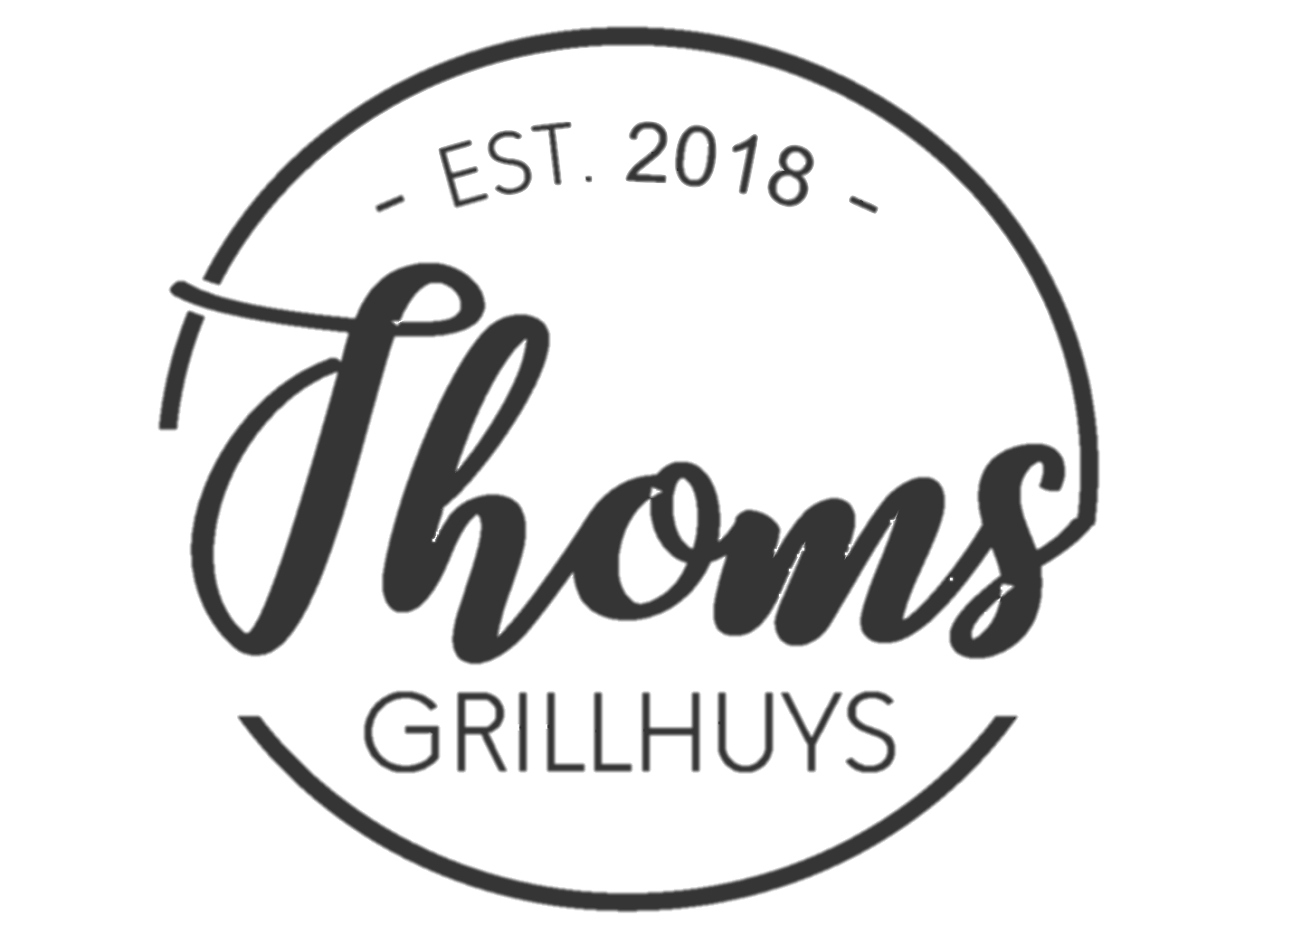 Thoms Grillhuys